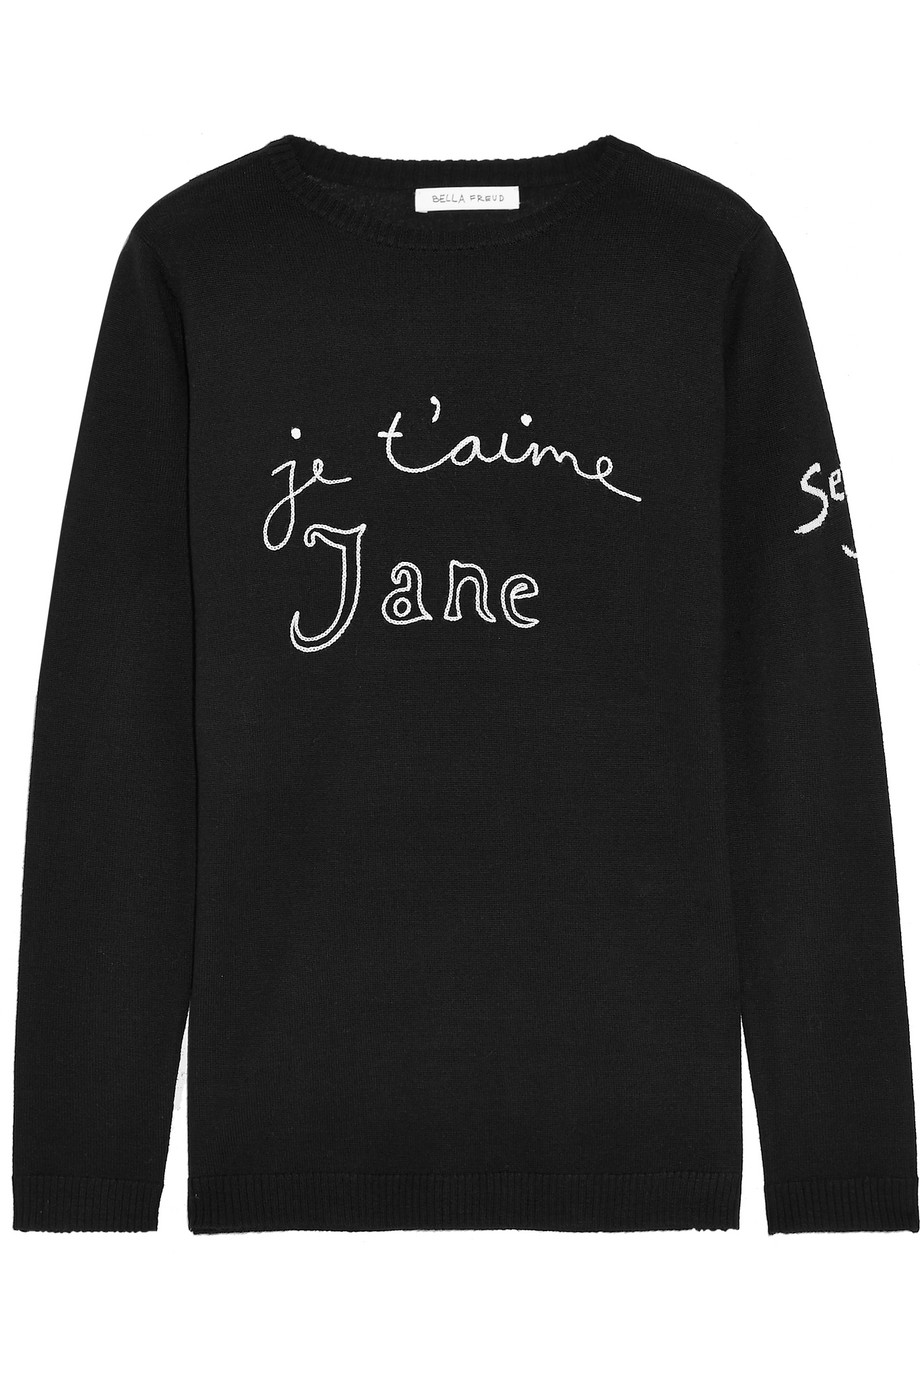 Bella Freud Je T'aime Jane Embroidered Wool Sweater, Black, Women's, Size: L